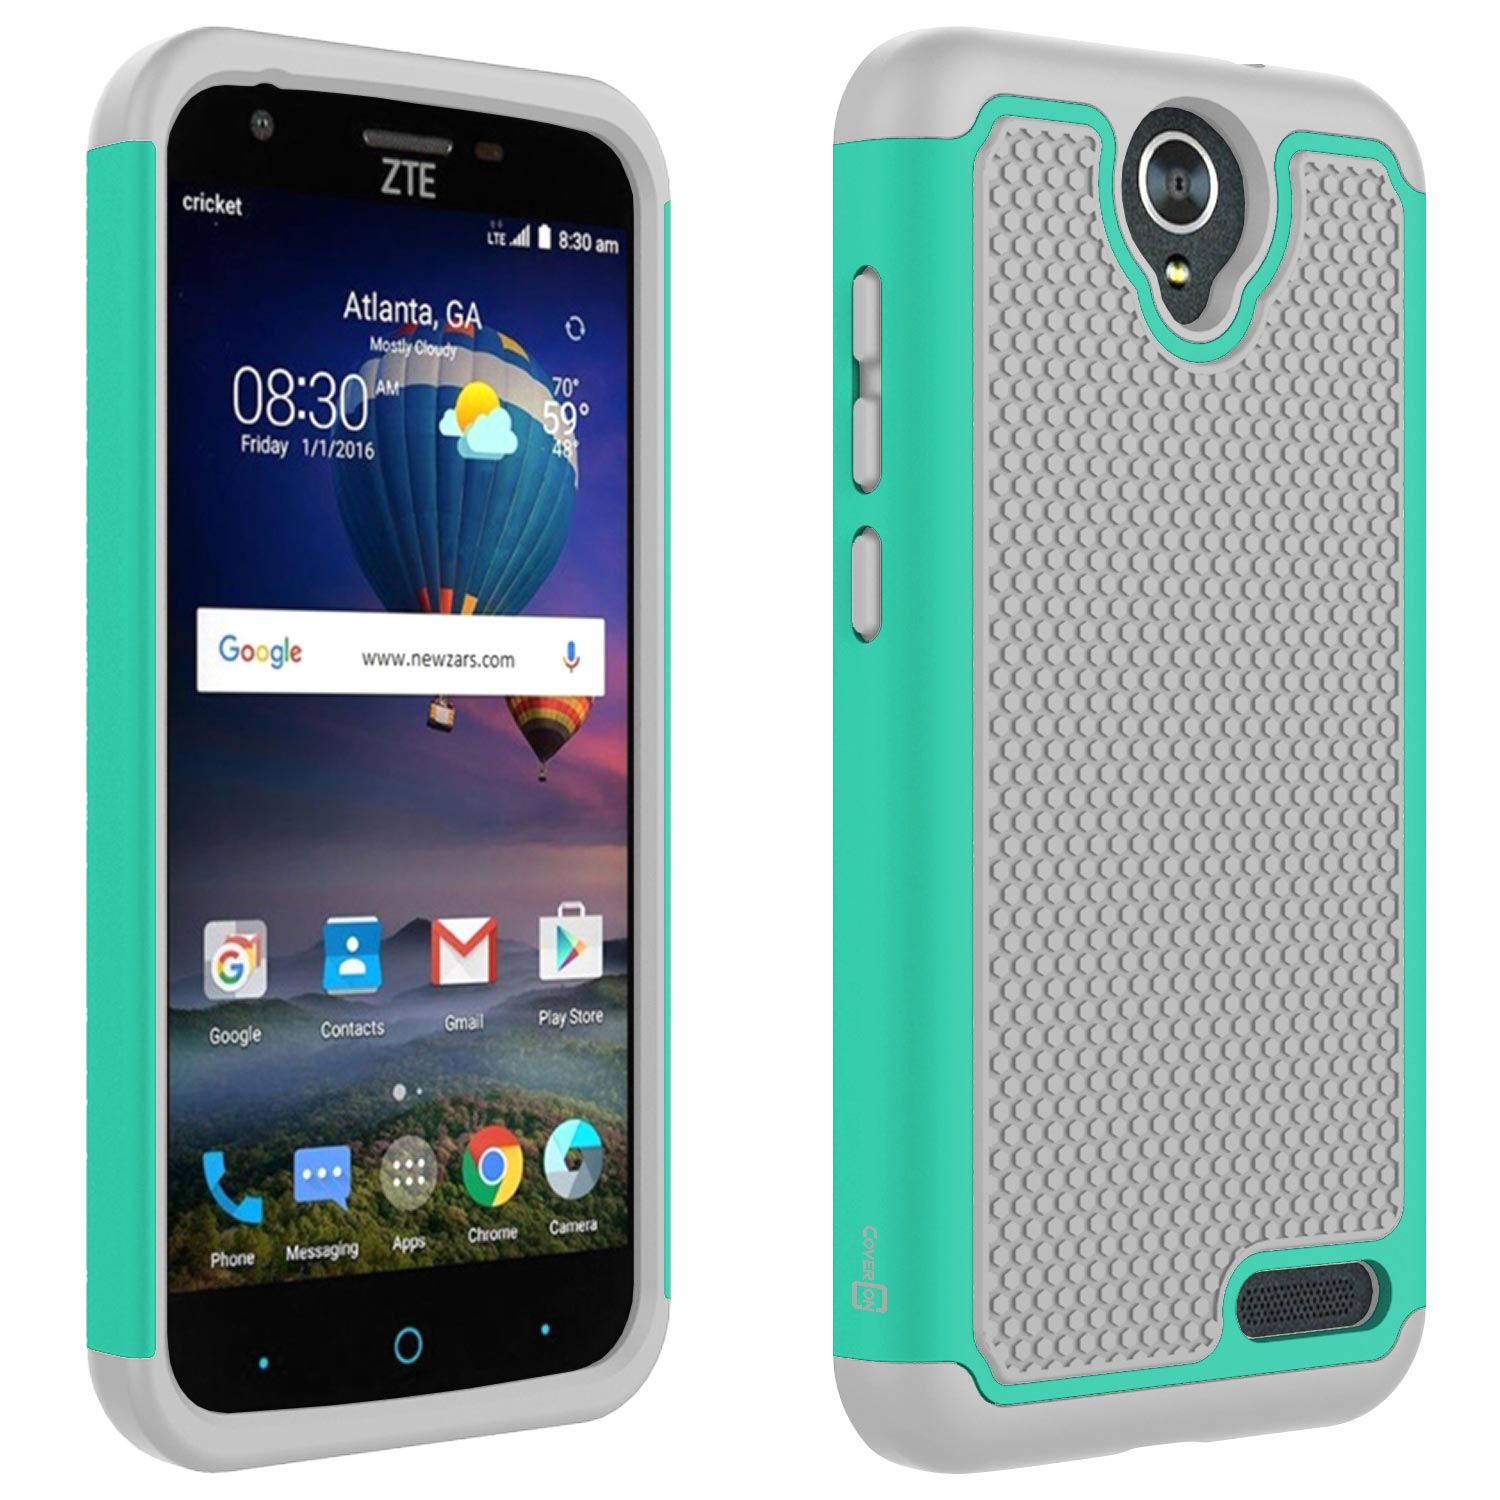 newest 5f5c9 3a77c Details about Teal / Gray Case For ZTE ZMax 3 / ZMax Champ / ZMax Grand /  Grand X3 / Avid 916